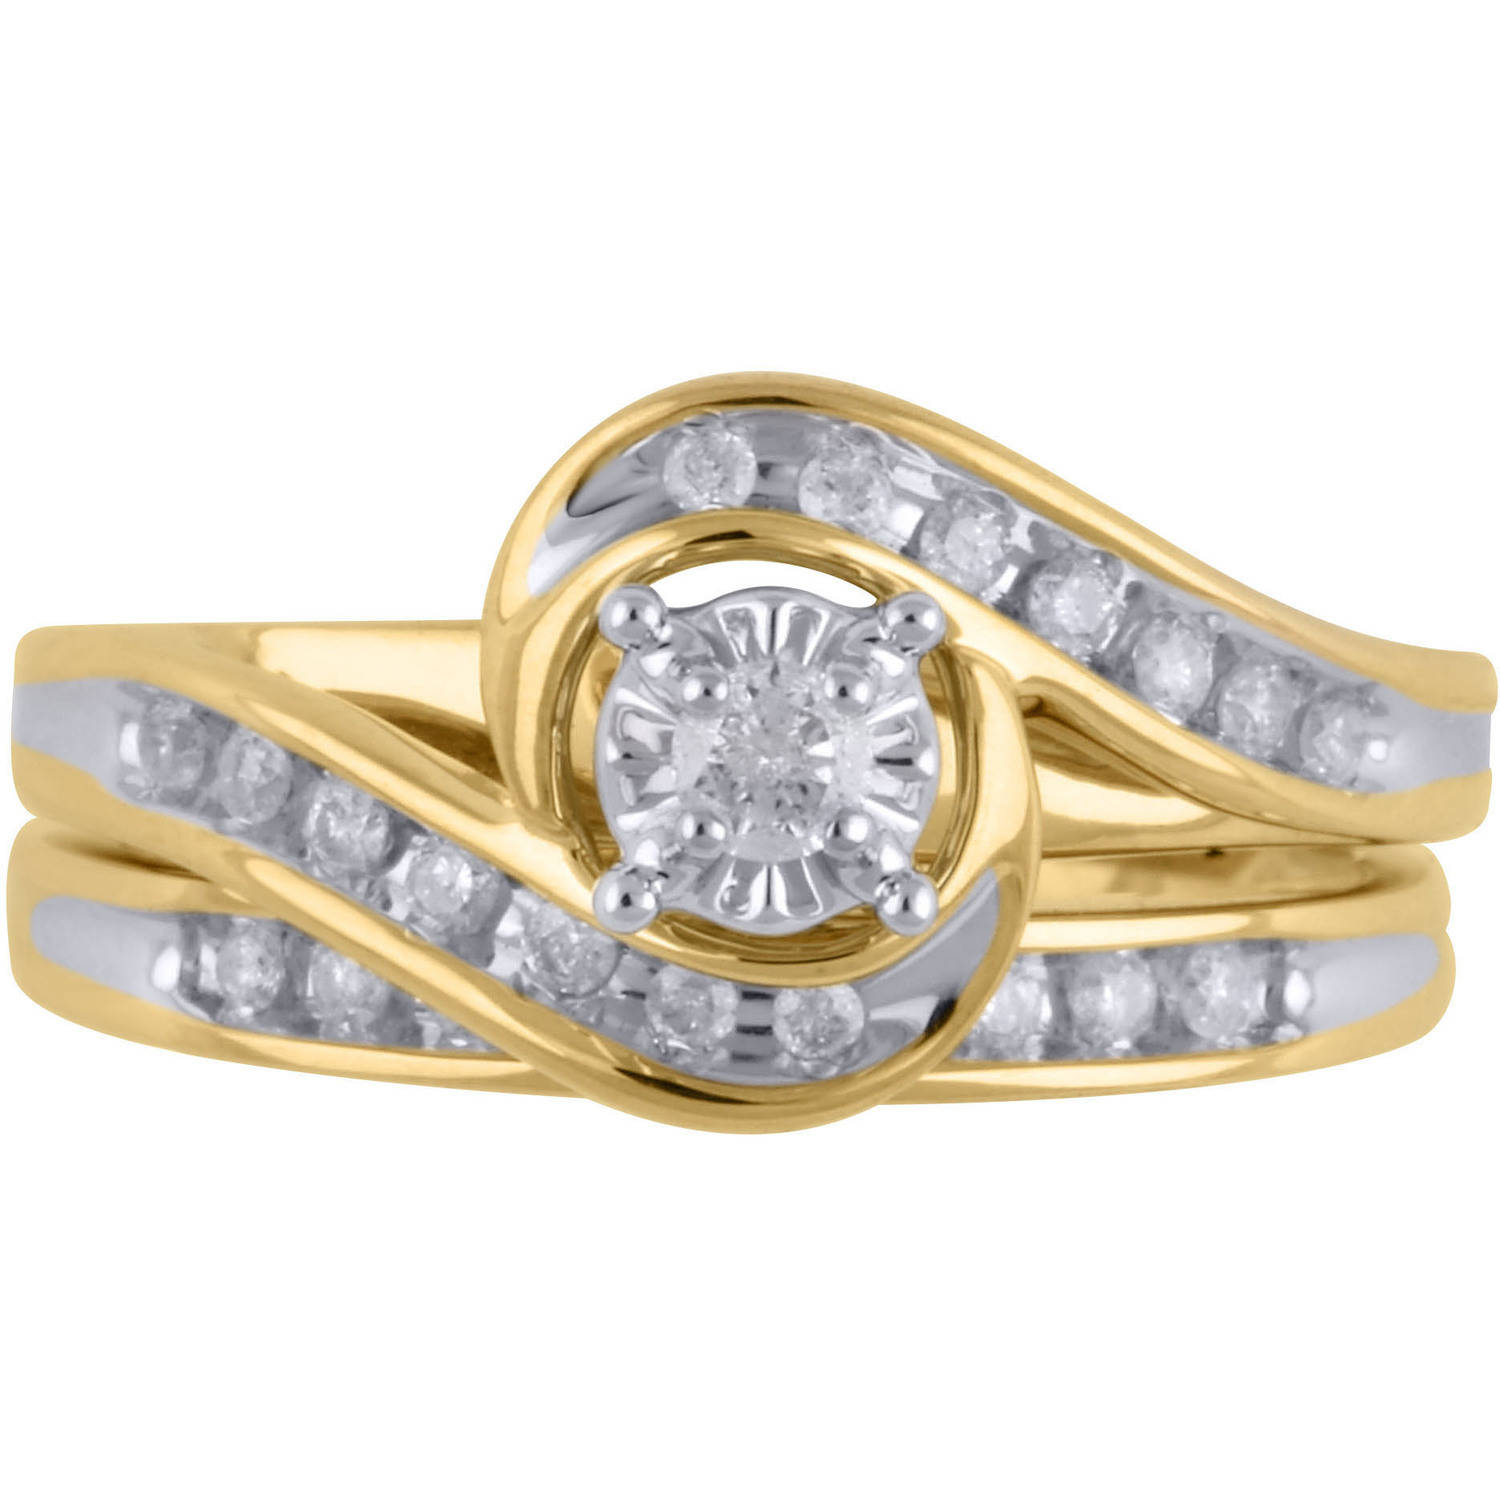 gallery rings real engagement of wedding view sets with displaying ring unique beautiful attachment full gold golden